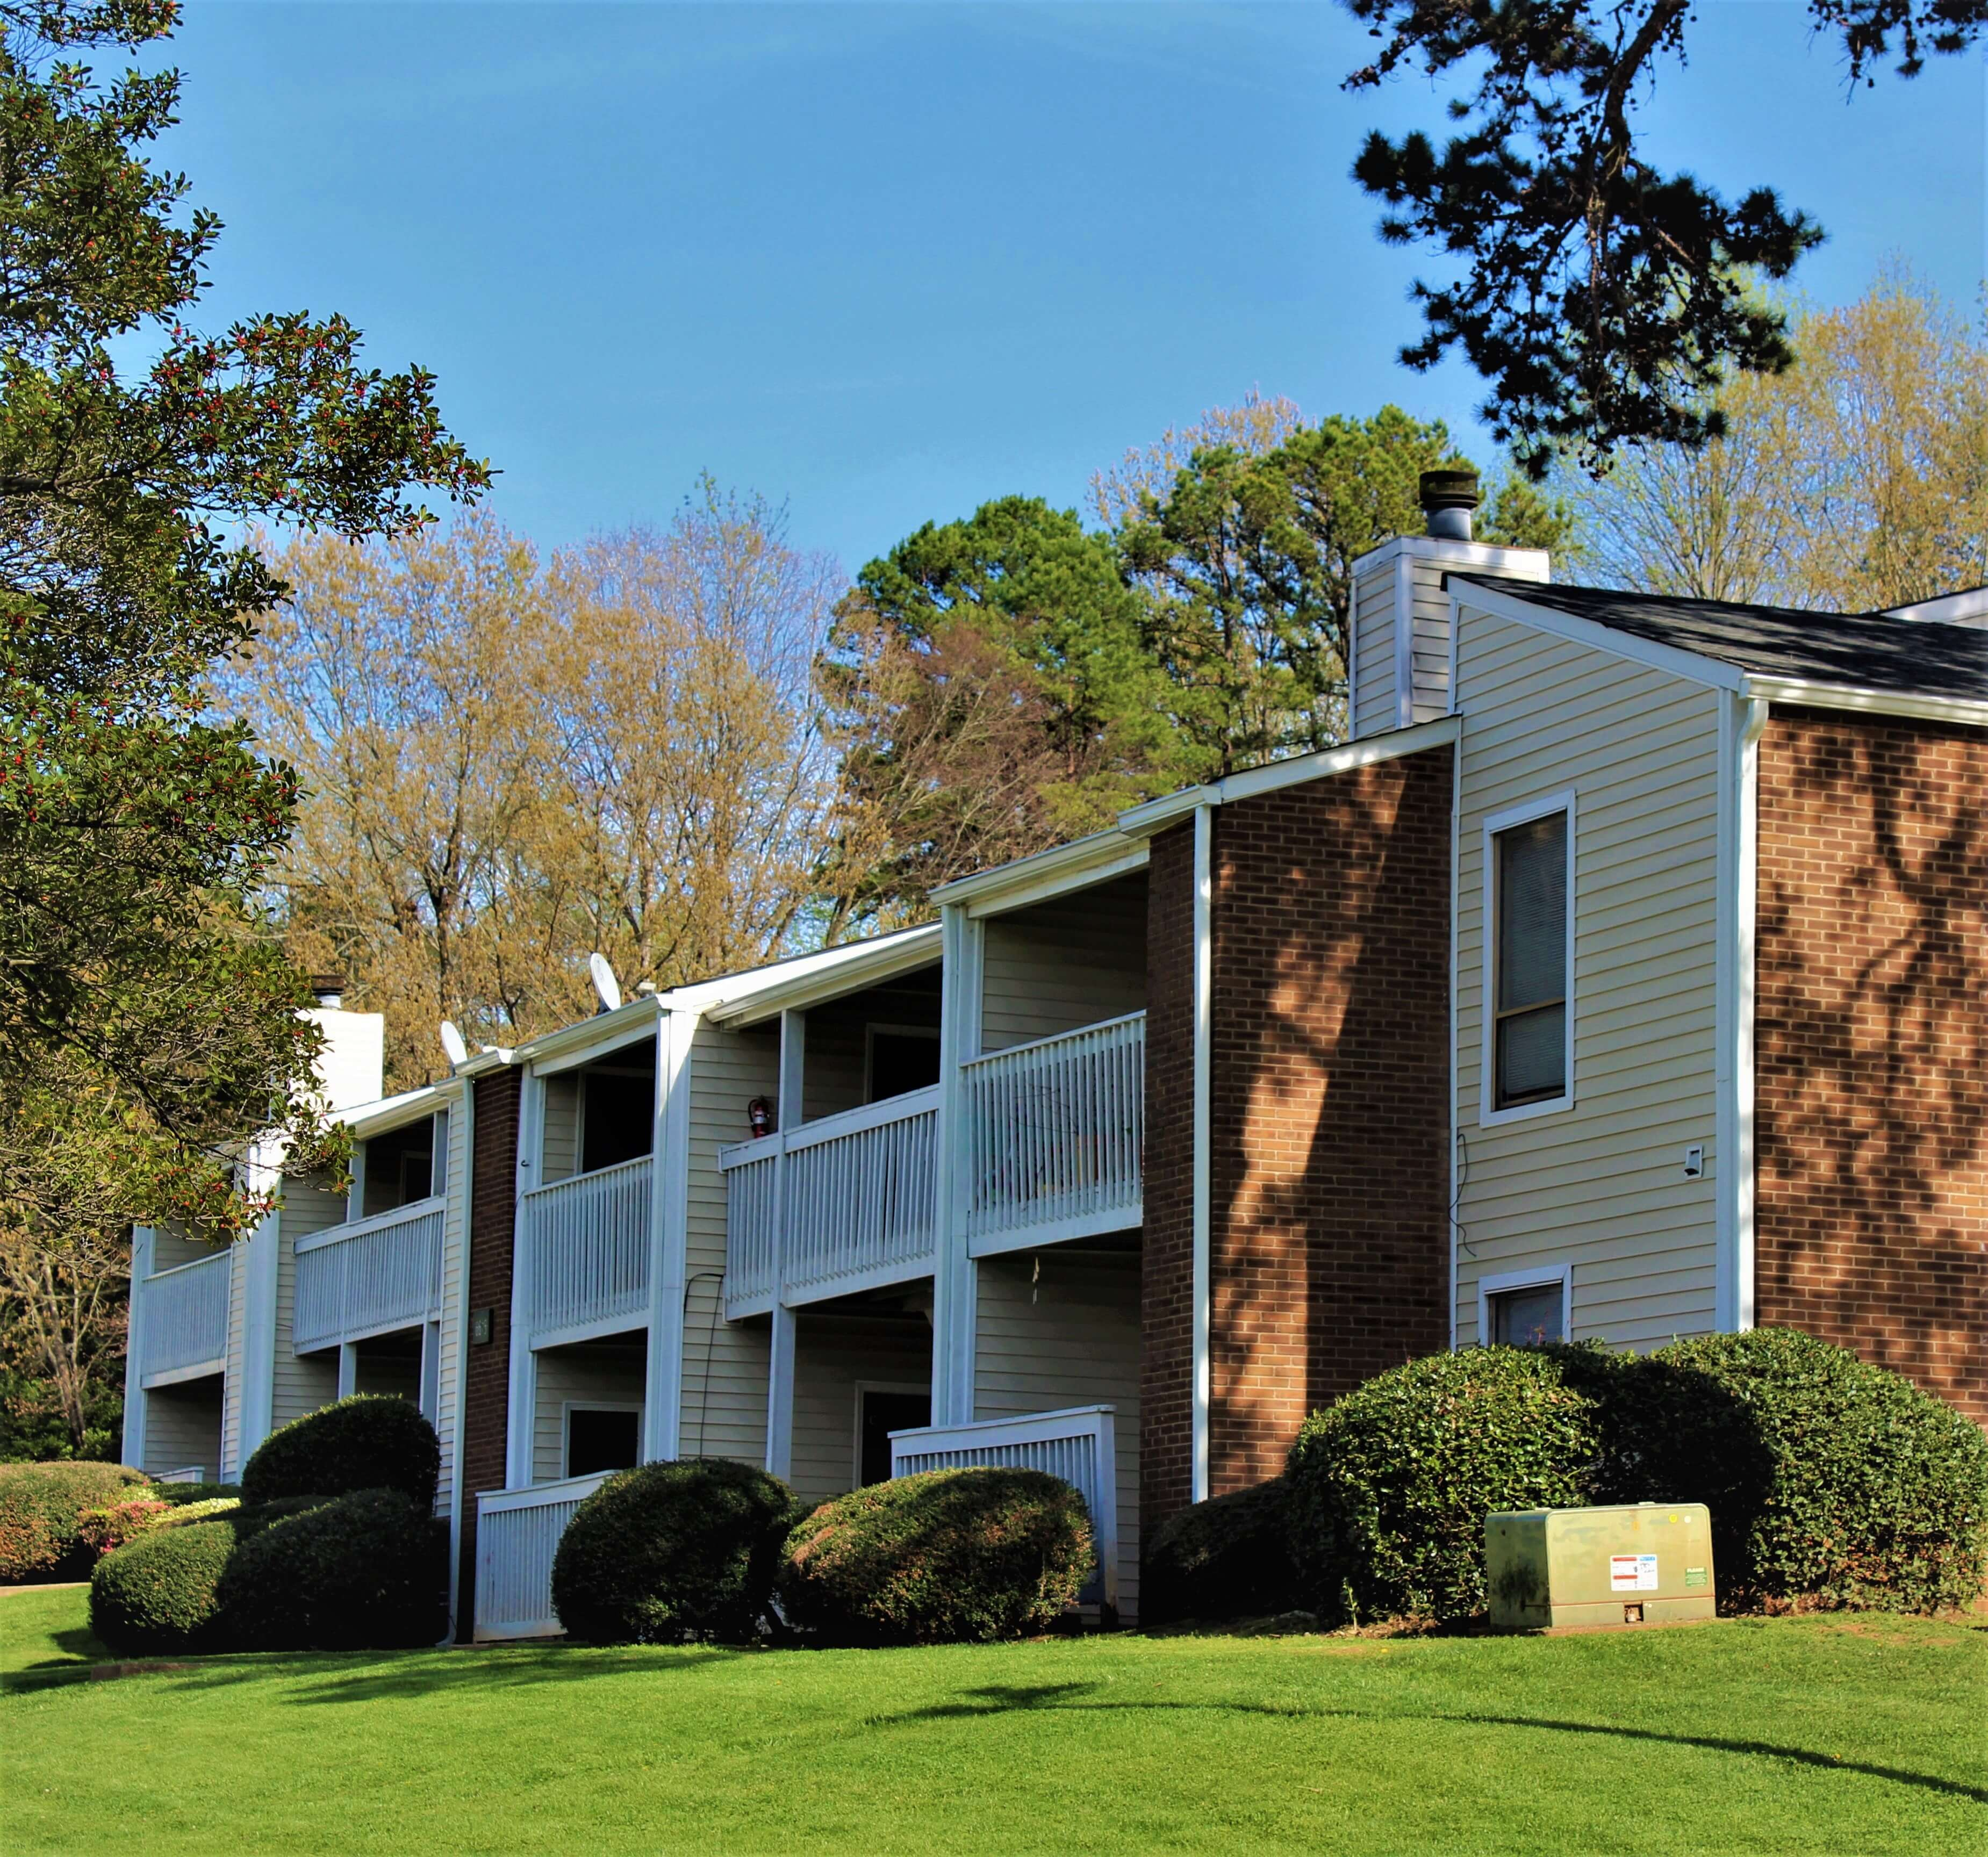 Birch Creek Apartments: Woodbridge Apartment Homes 6619 Yateswood Drive, Charlotte